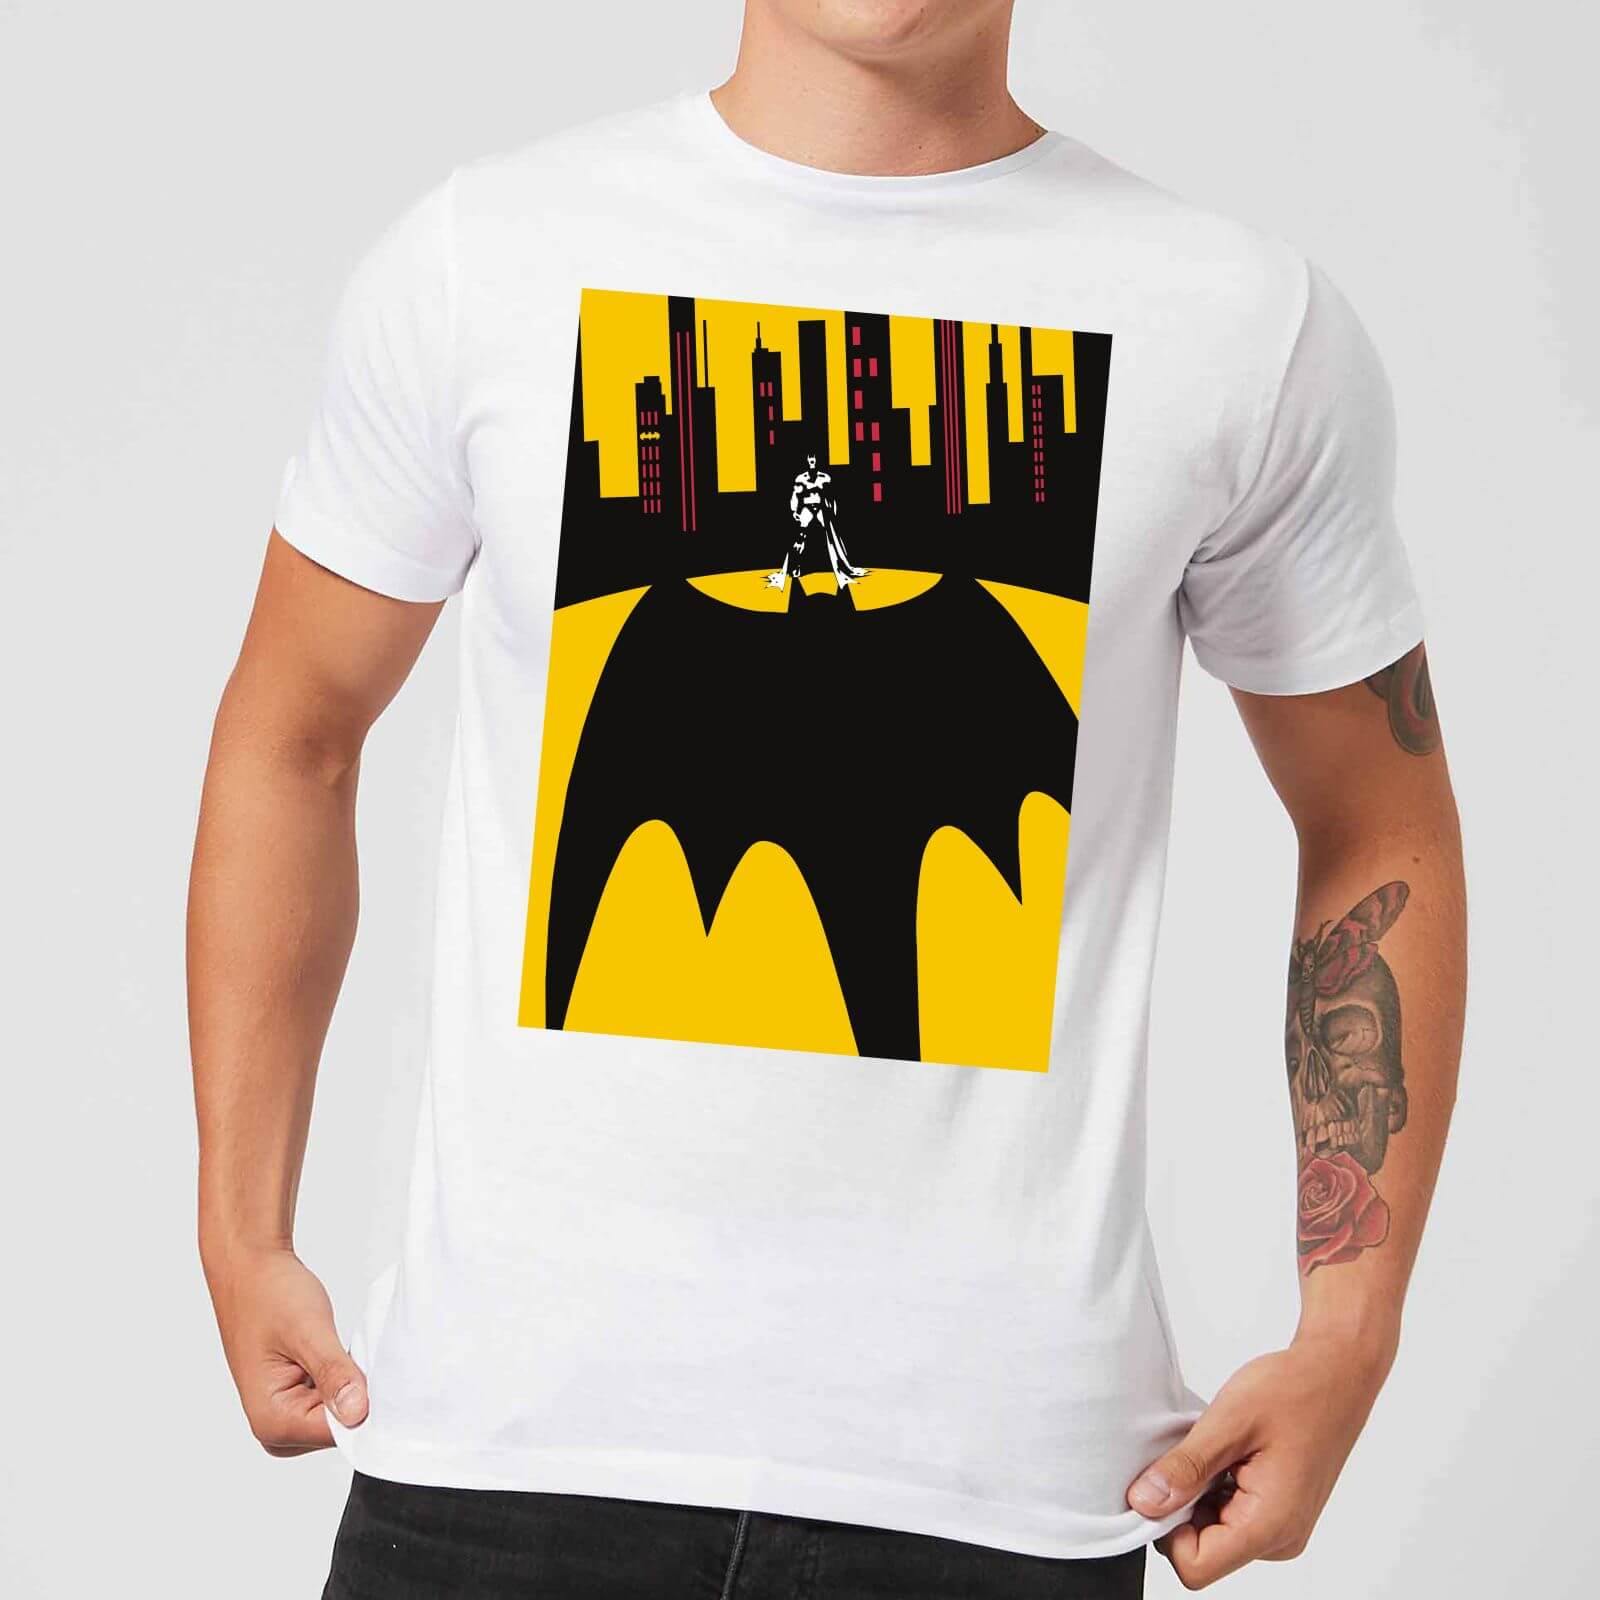 df4934aec262f DC Comics Batman Bat Shadow T-Shirt - White Clothing   Zavvi